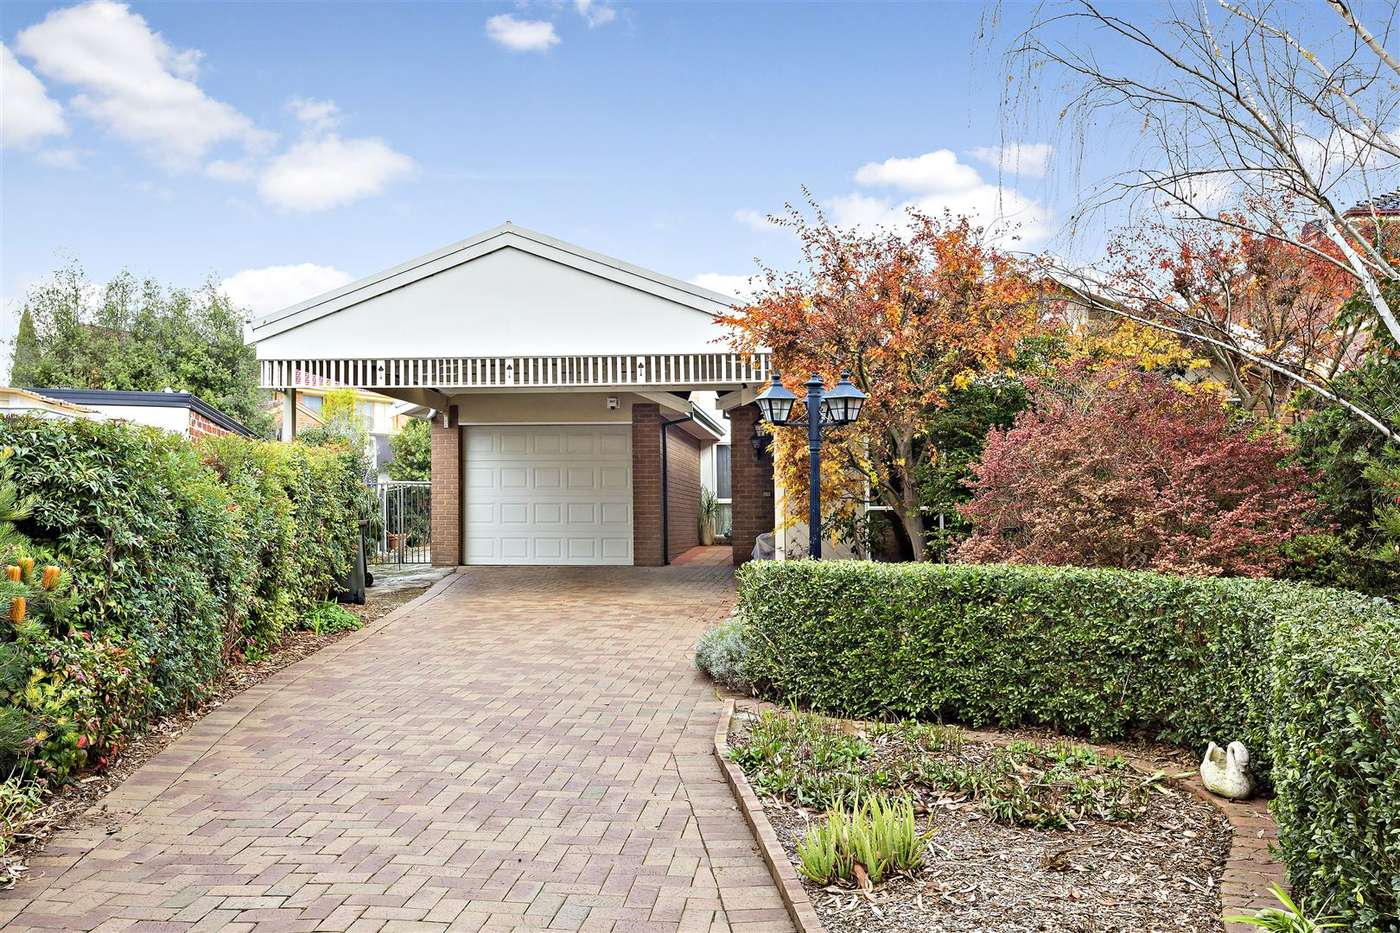 Main view of Homely house listing, 4 Maldon Court,, Wheelers Hill, VIC 3150